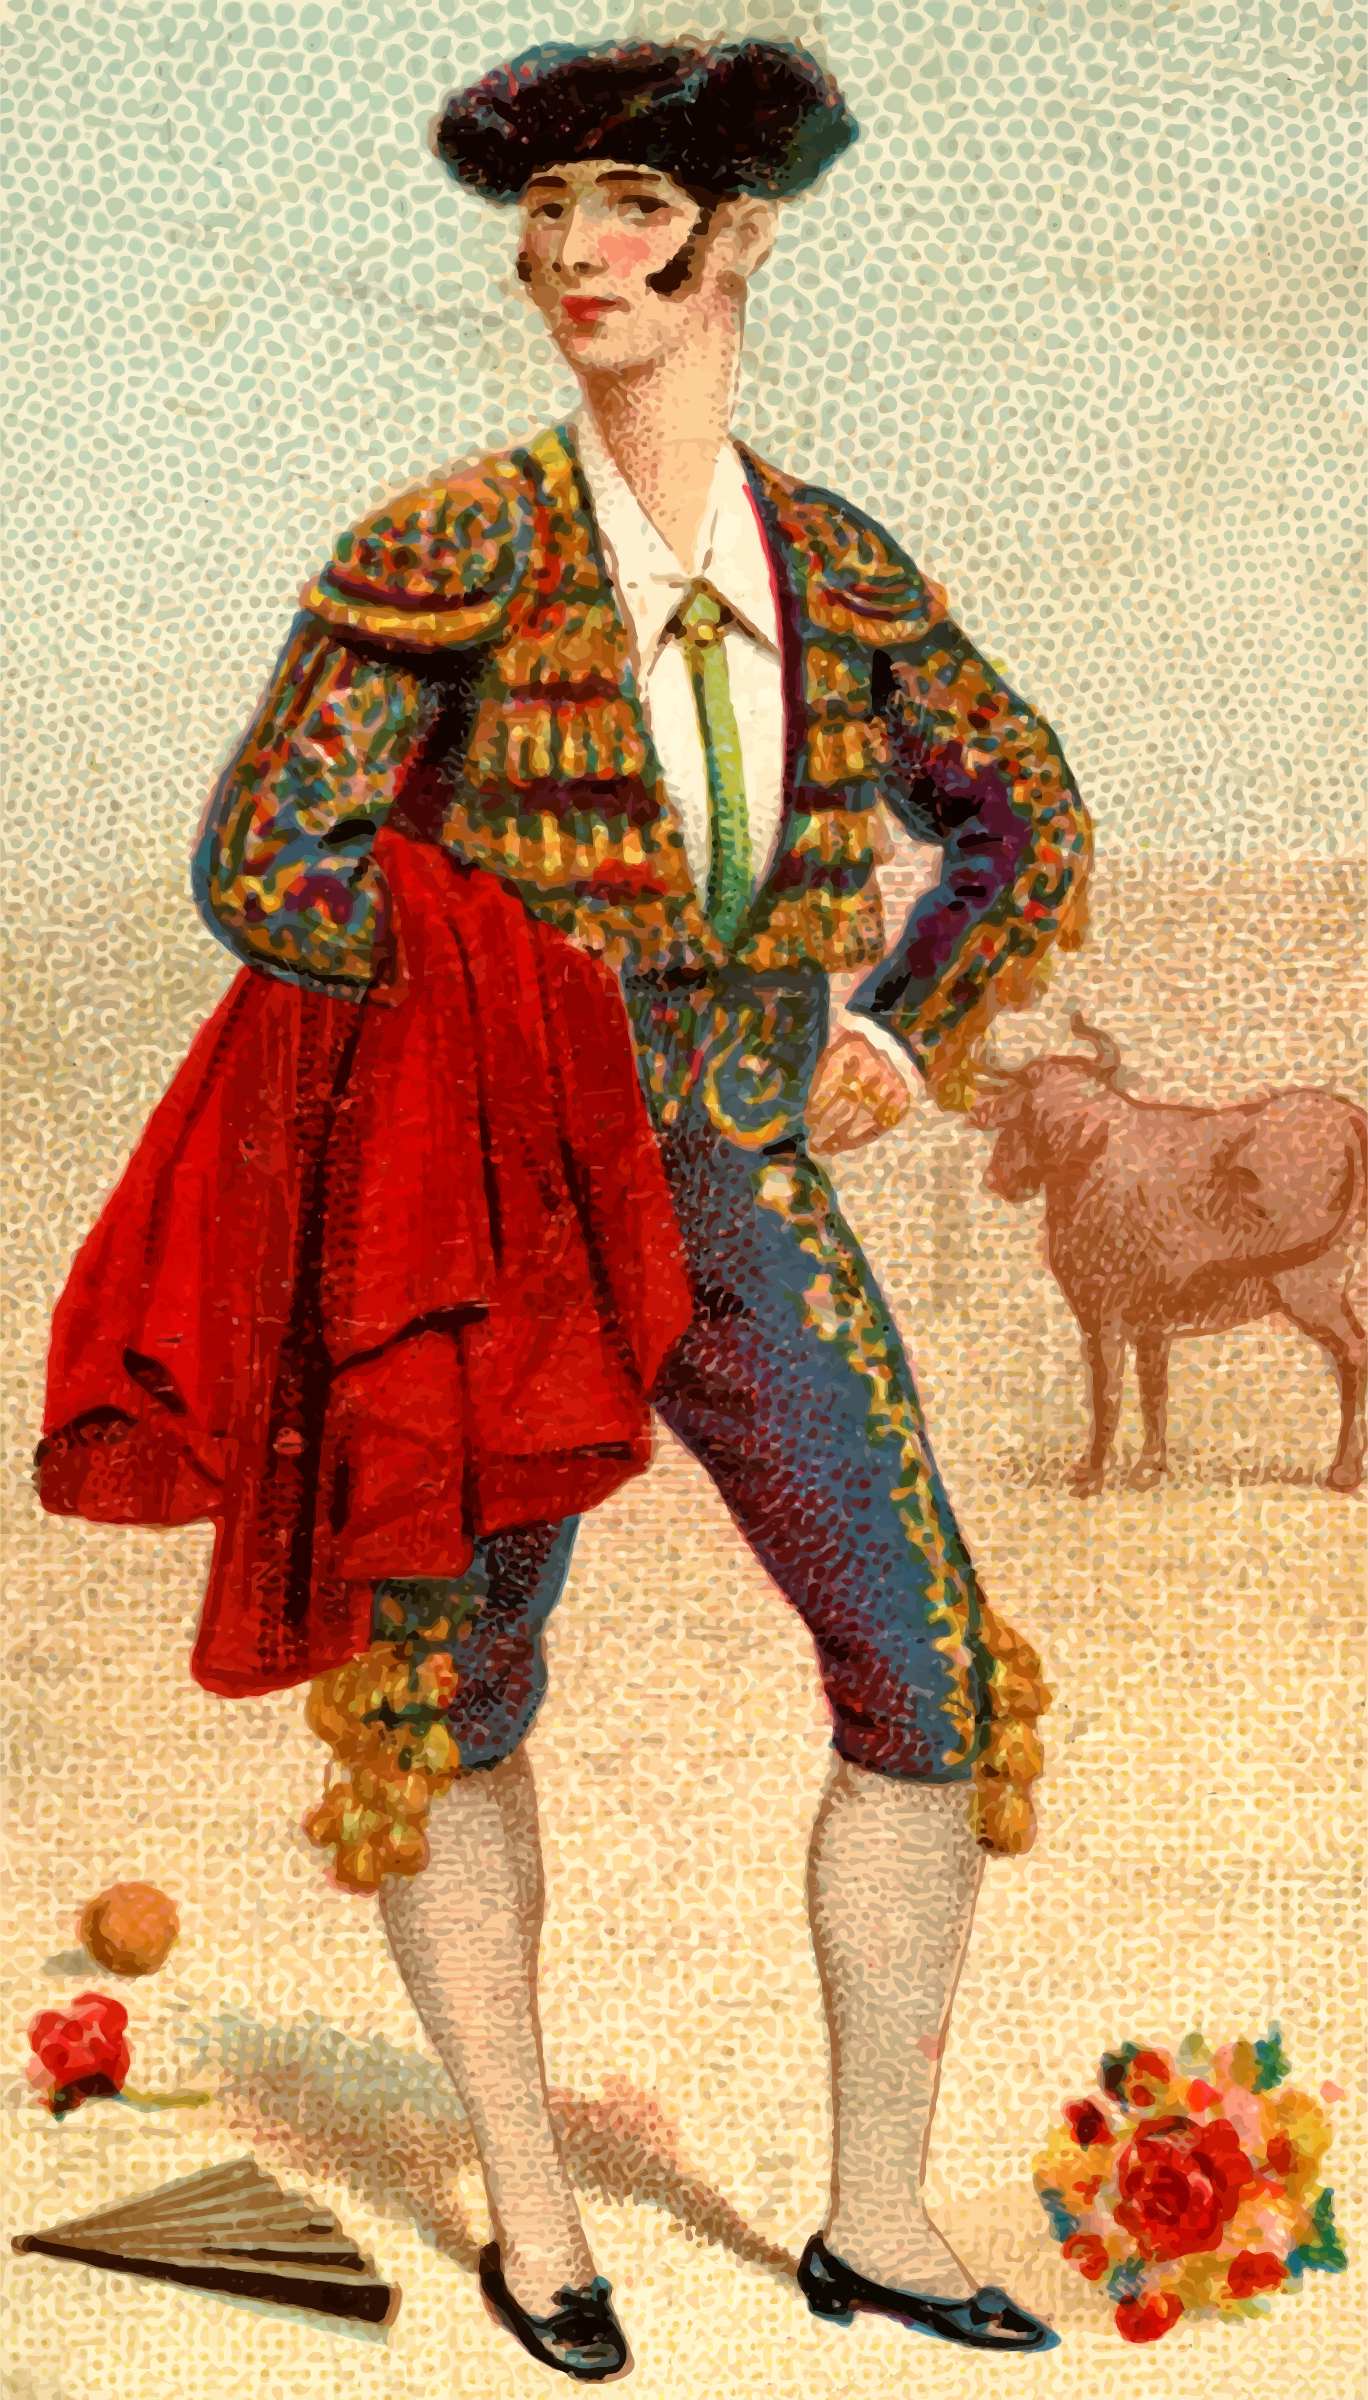 Cigarette card - Torero by Firkin